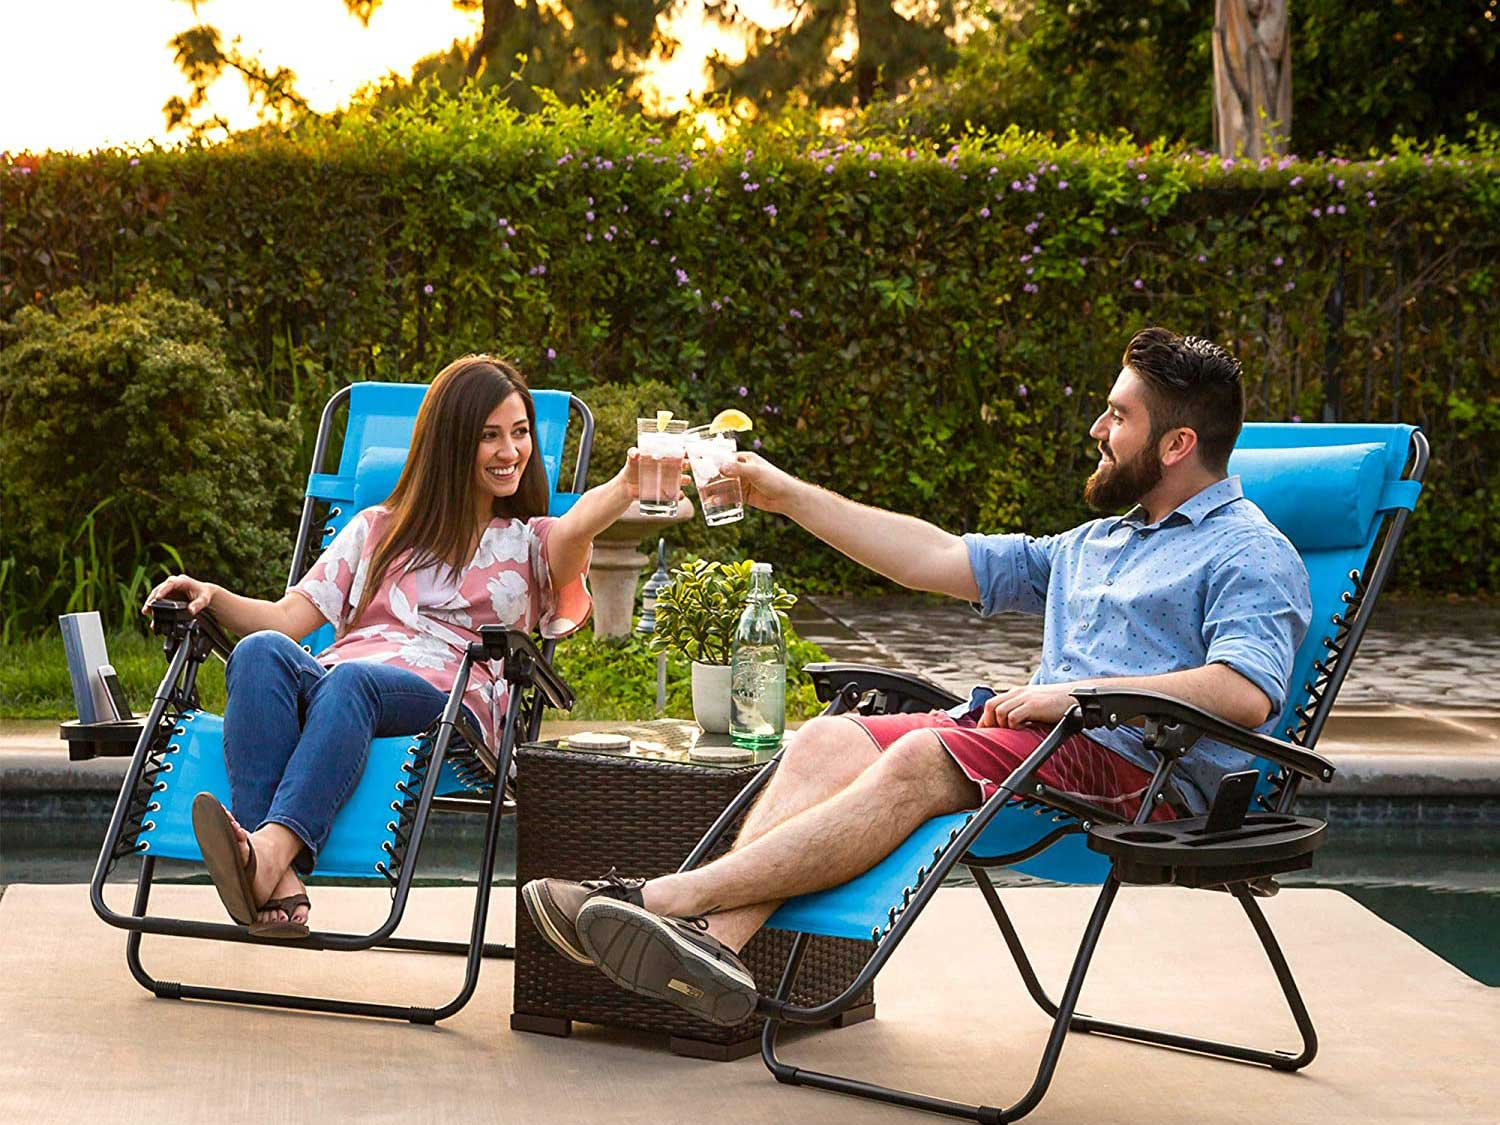 Pool Furniture You Can Add to Any Patio